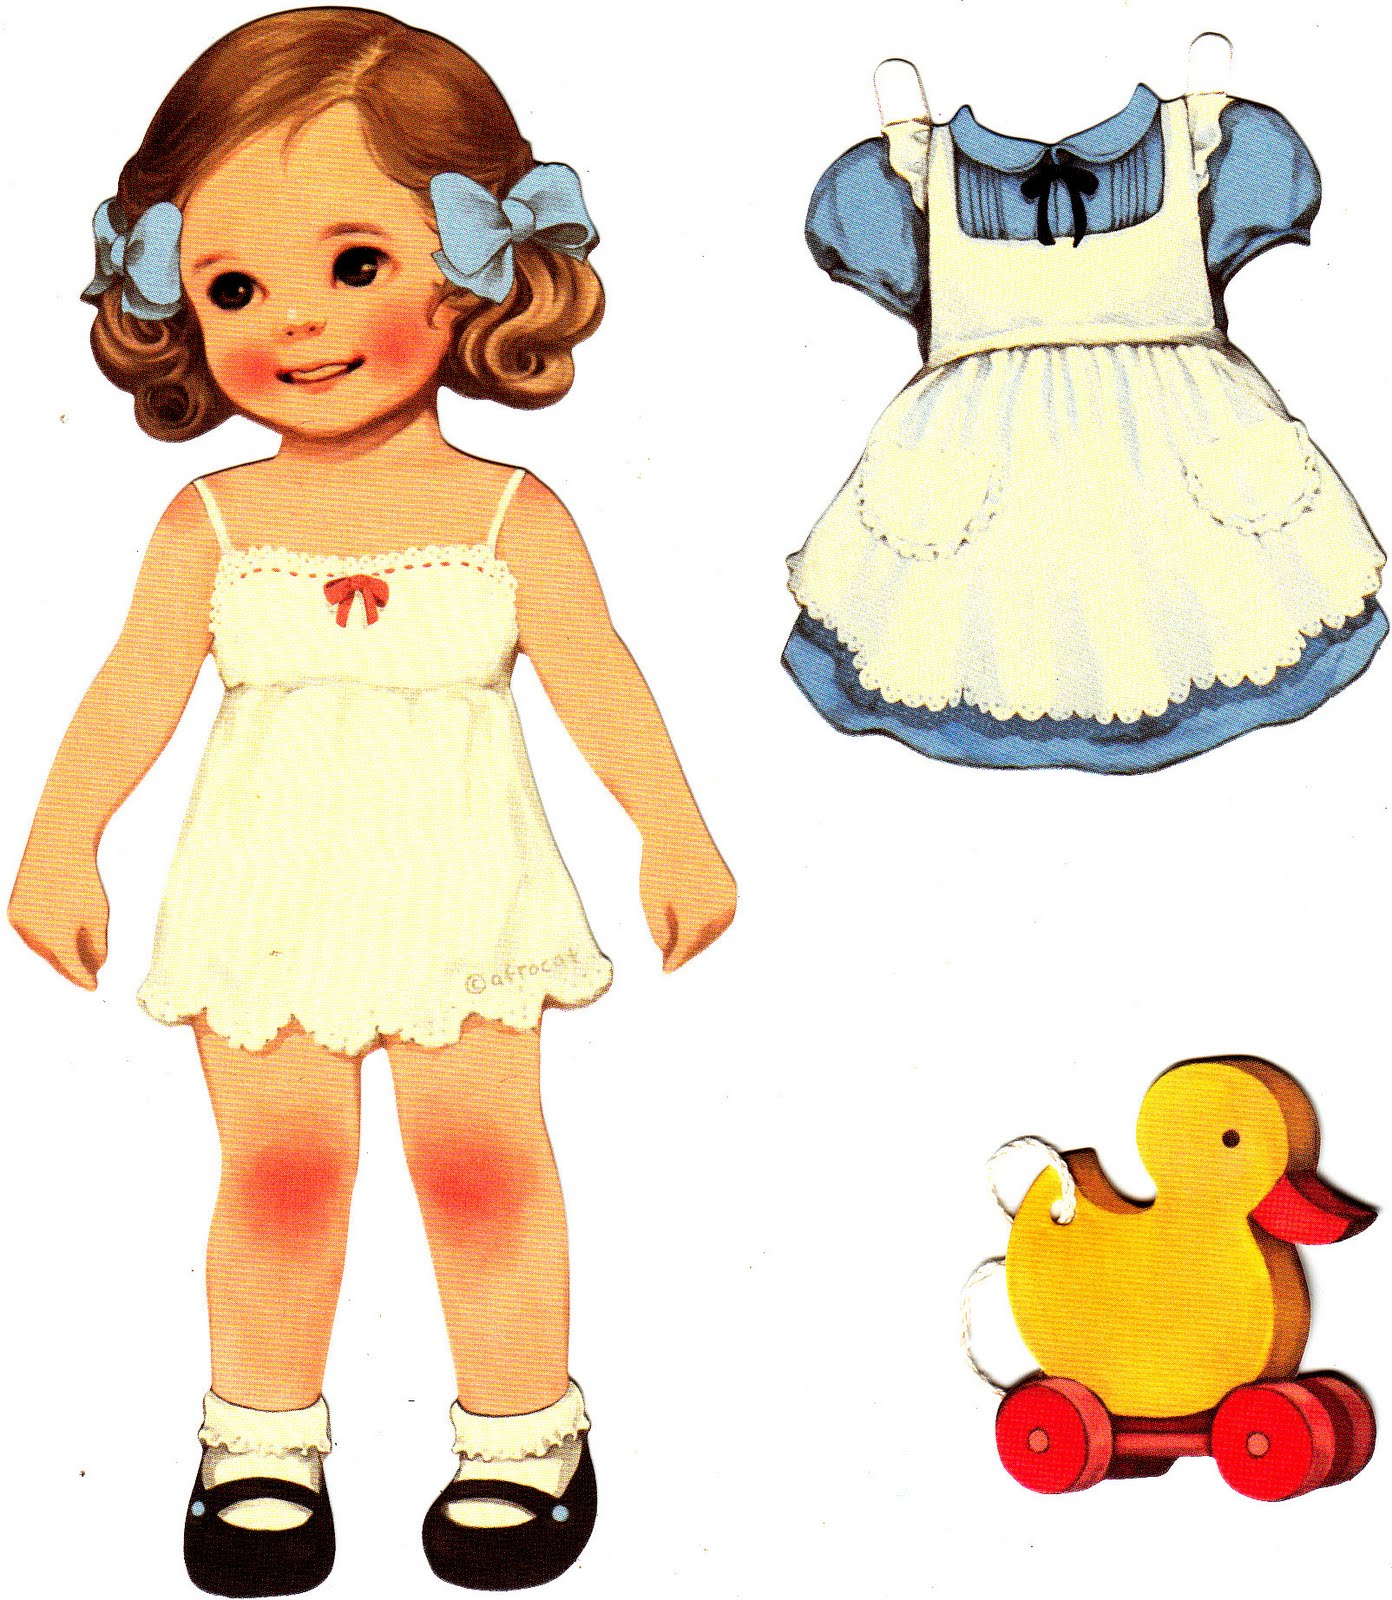 Free Vintage Paper Doll Images With Lori From Chouxchoux Paper Art